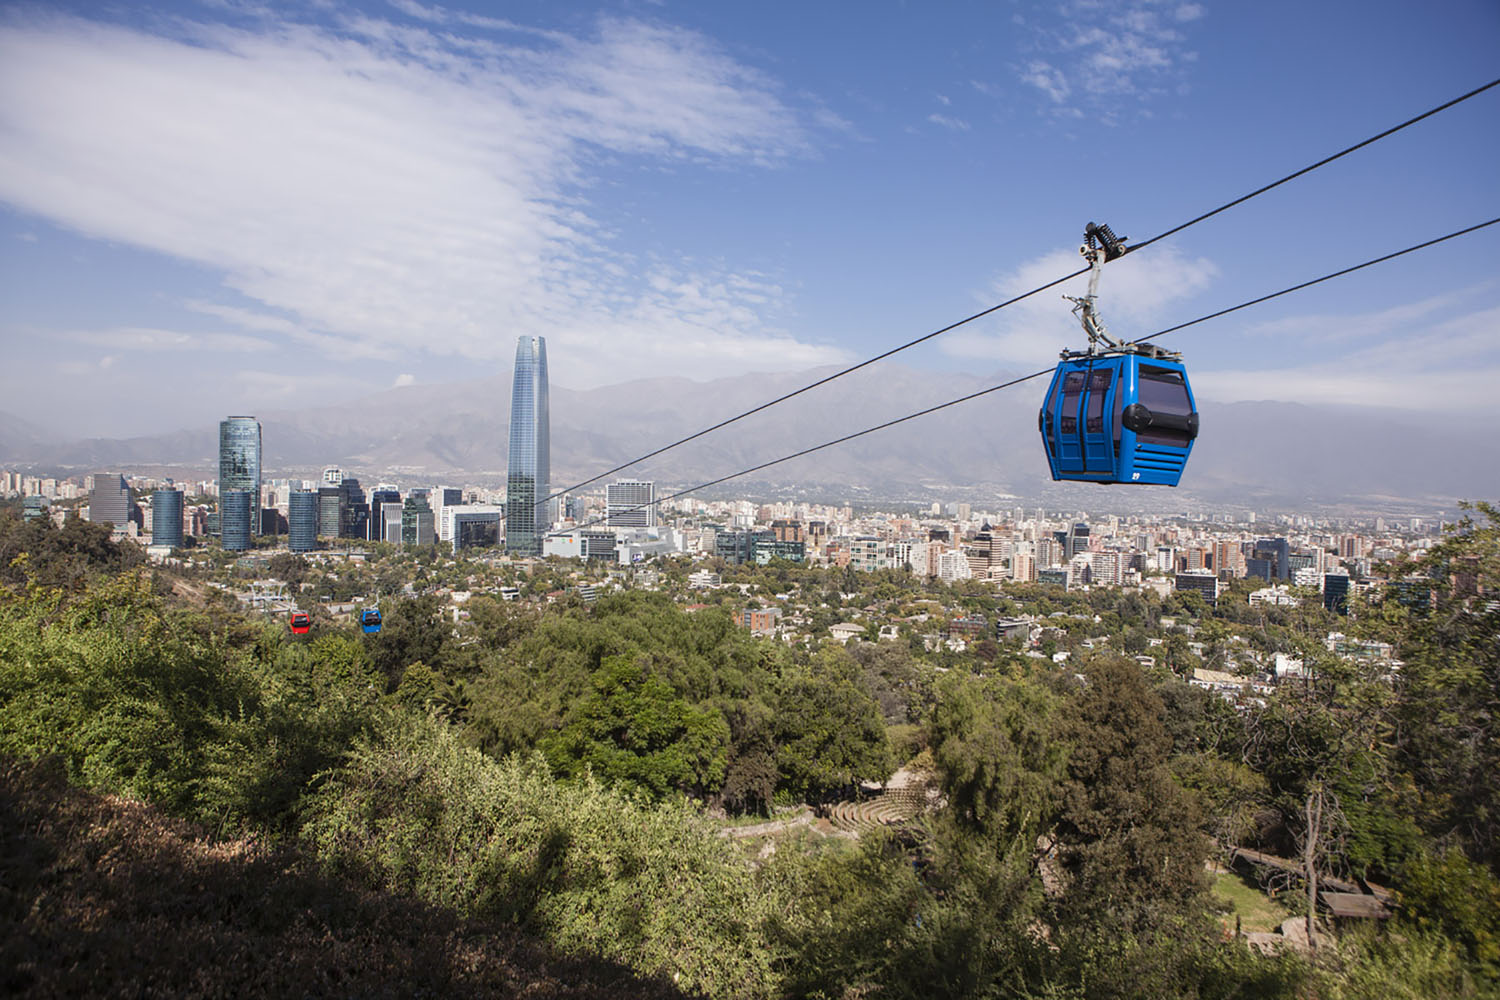 A cable car cruises to the top of Cerro San Cristóbal in Santiago, Chile.